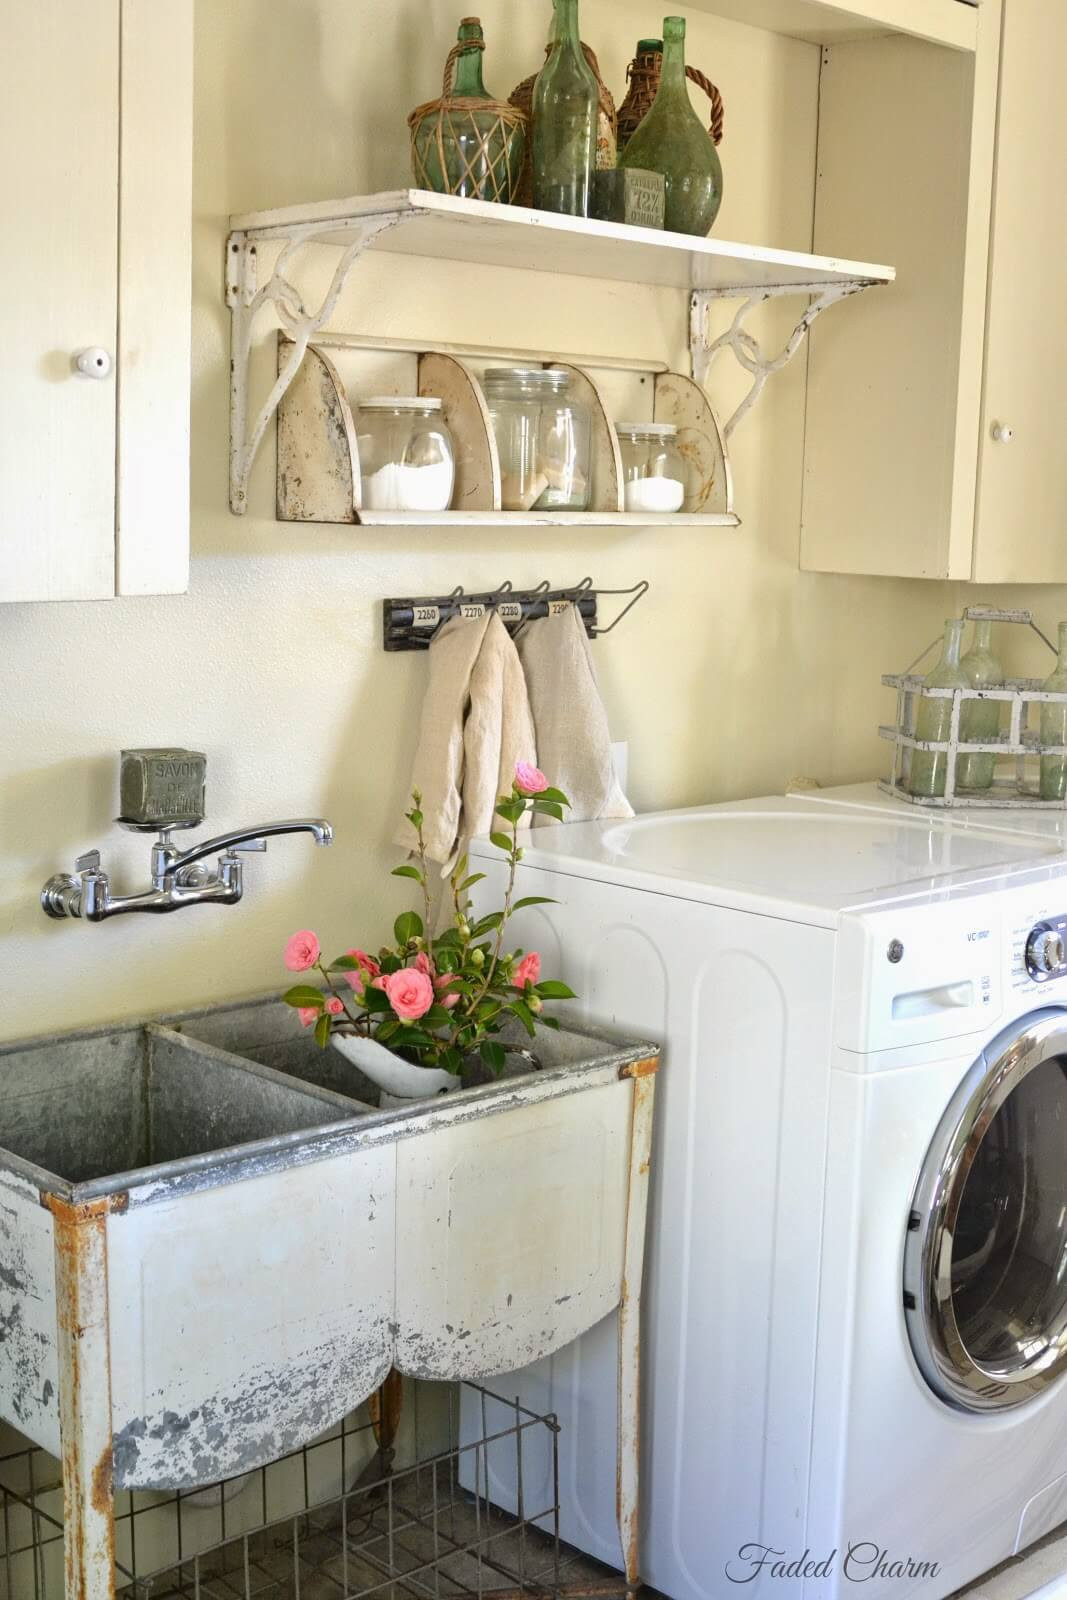 Best ideas about Laundry Room Accessories . Save or Pin 25 Best Vintage Laundry Room Decor Ideas and Designs for 2017 Now.